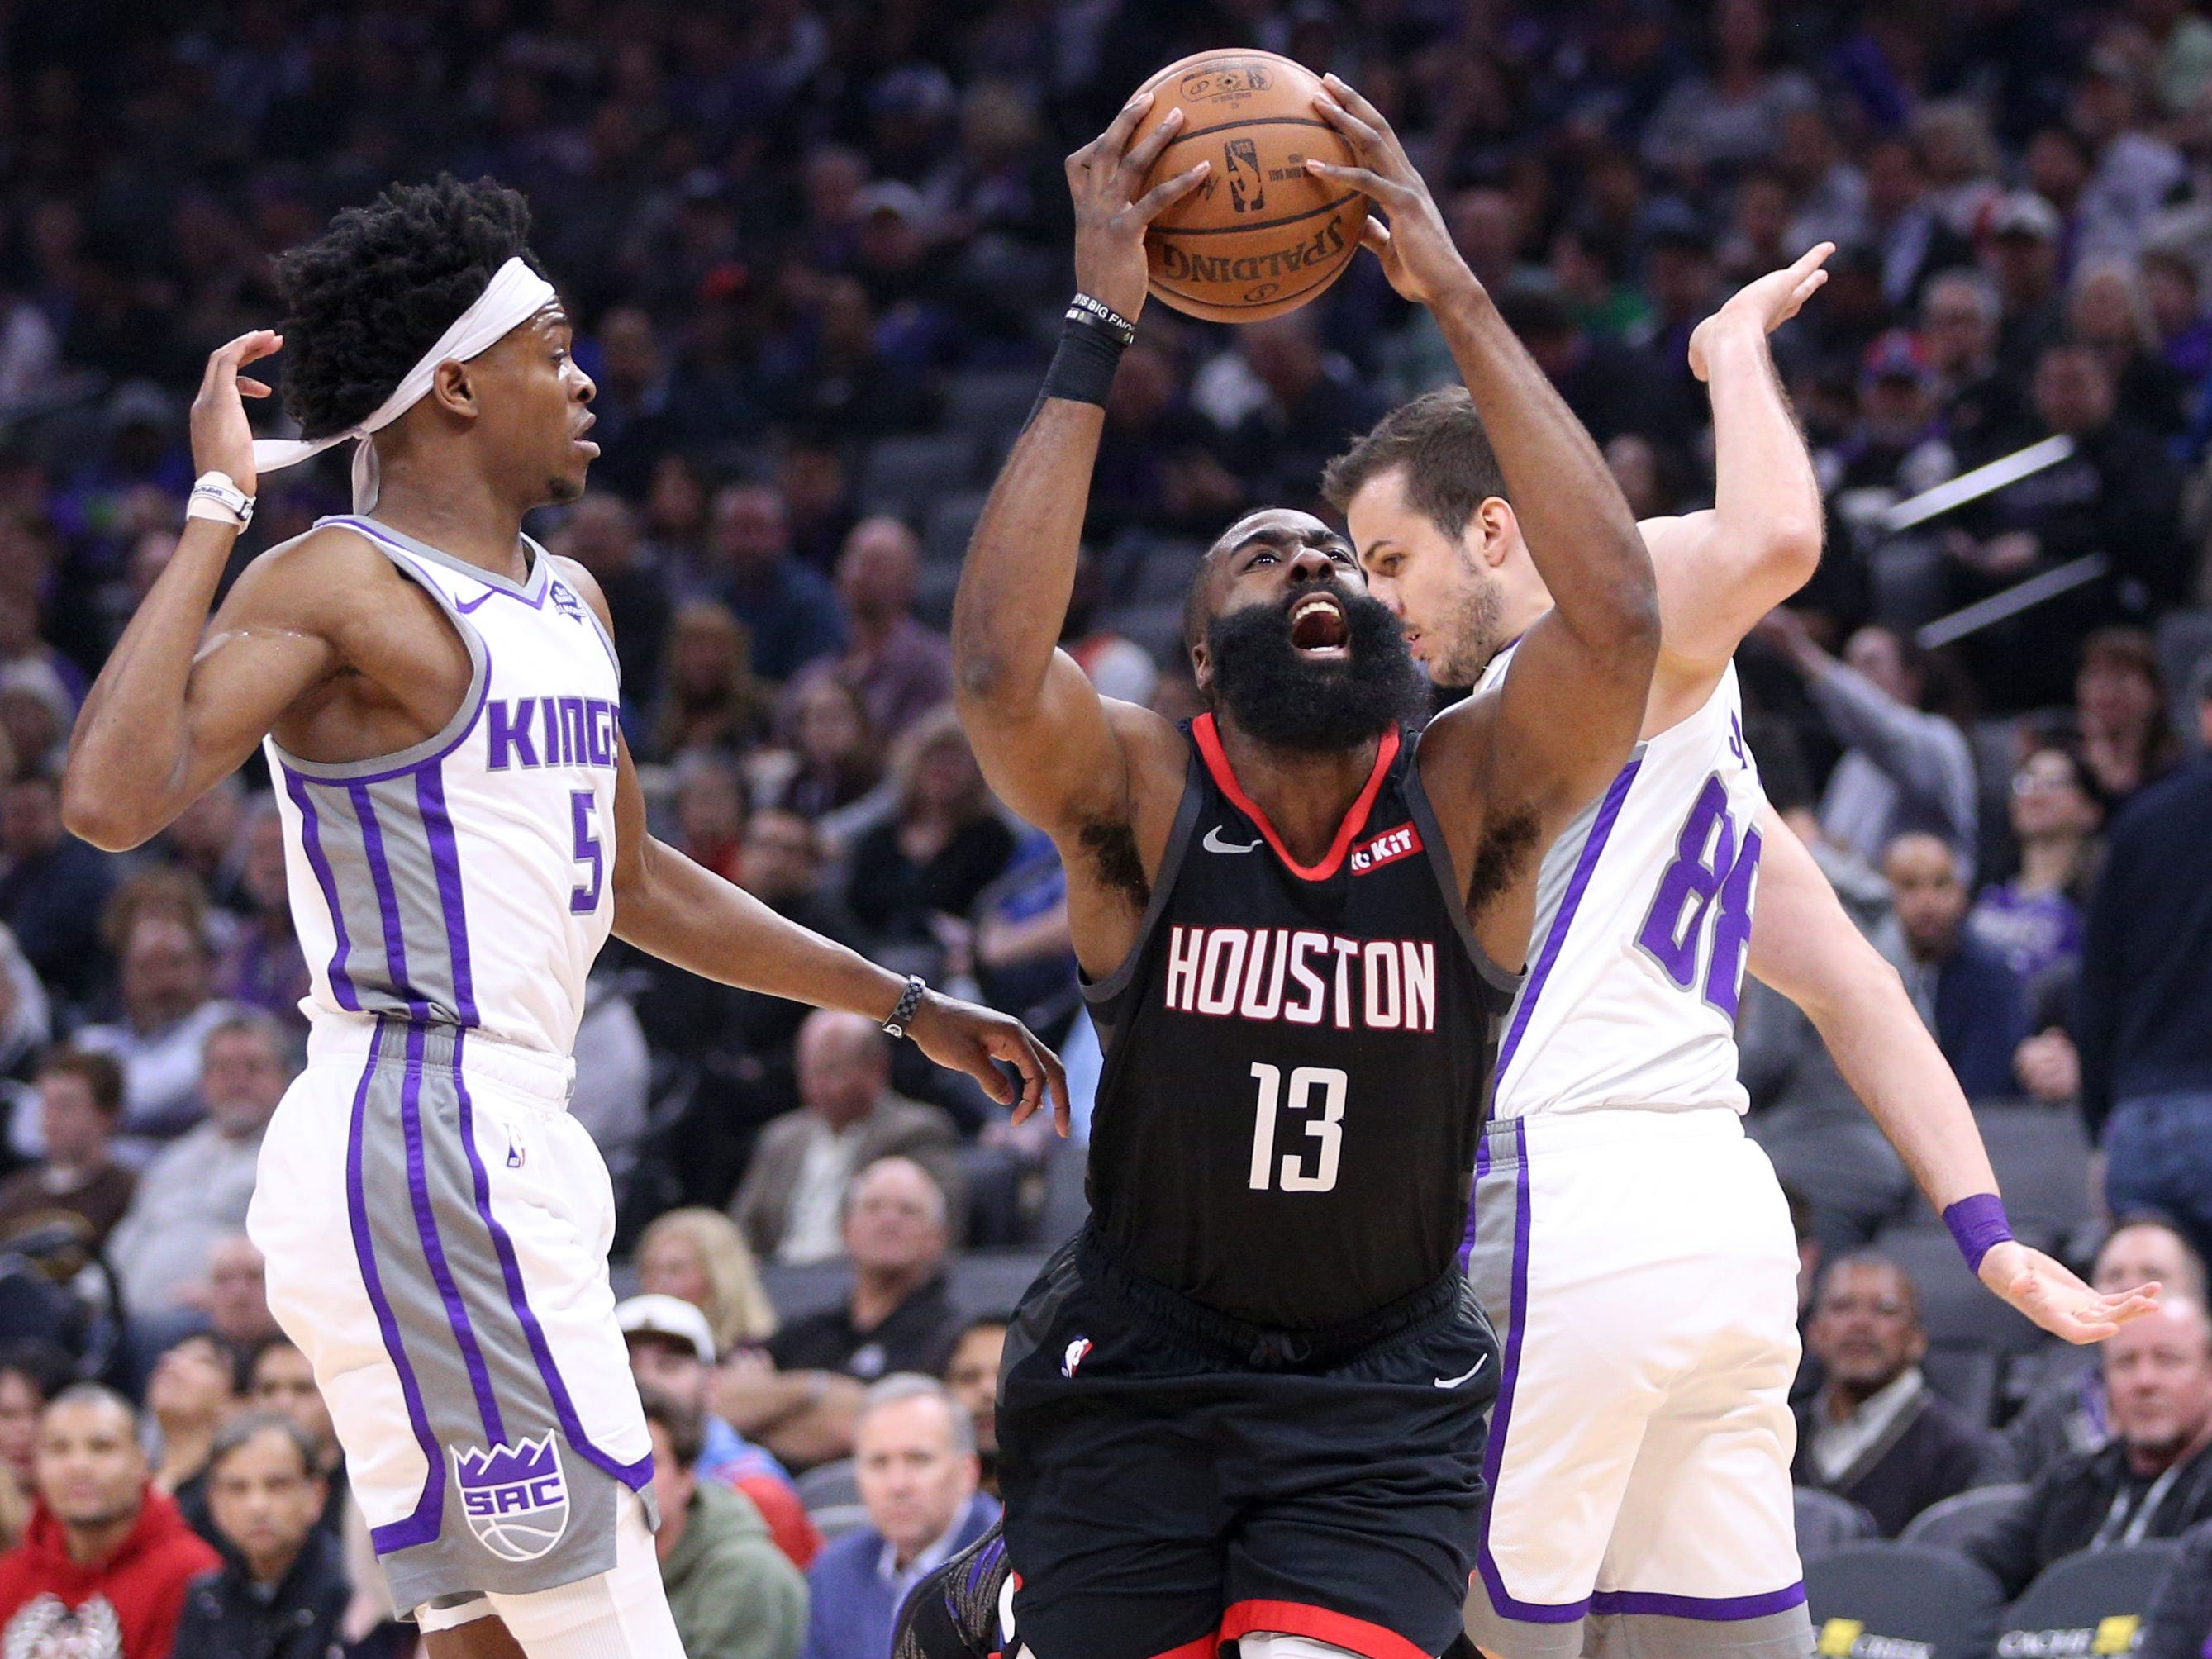 April 2: Rockets guard James Harden draws the foul while driving to the hoop against the Kings in Sacramento. Harden andtThe Rockets won 130-105.